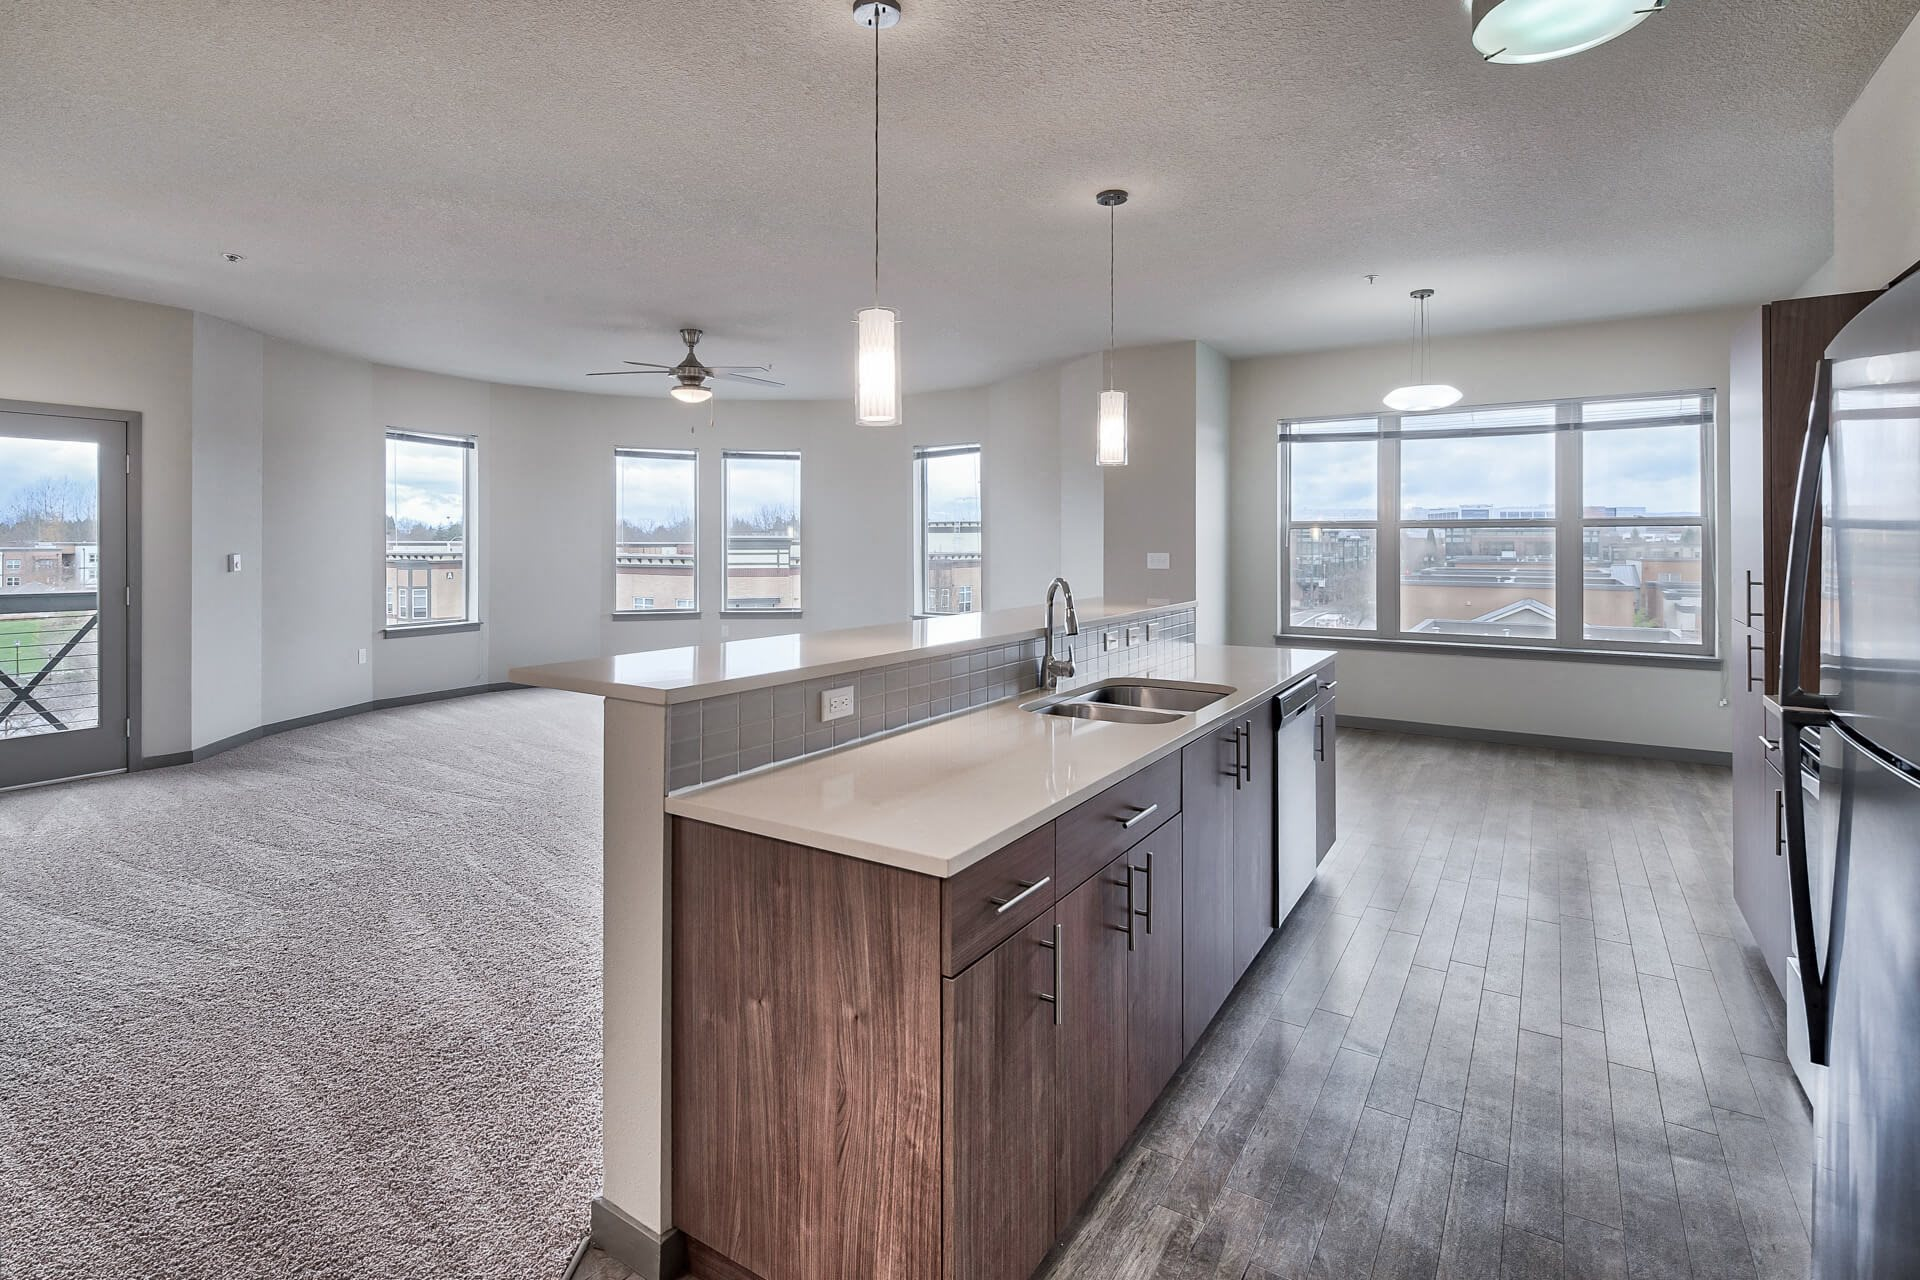 Stylish Apartments with Large Windows at Platform 14, 97124, OR